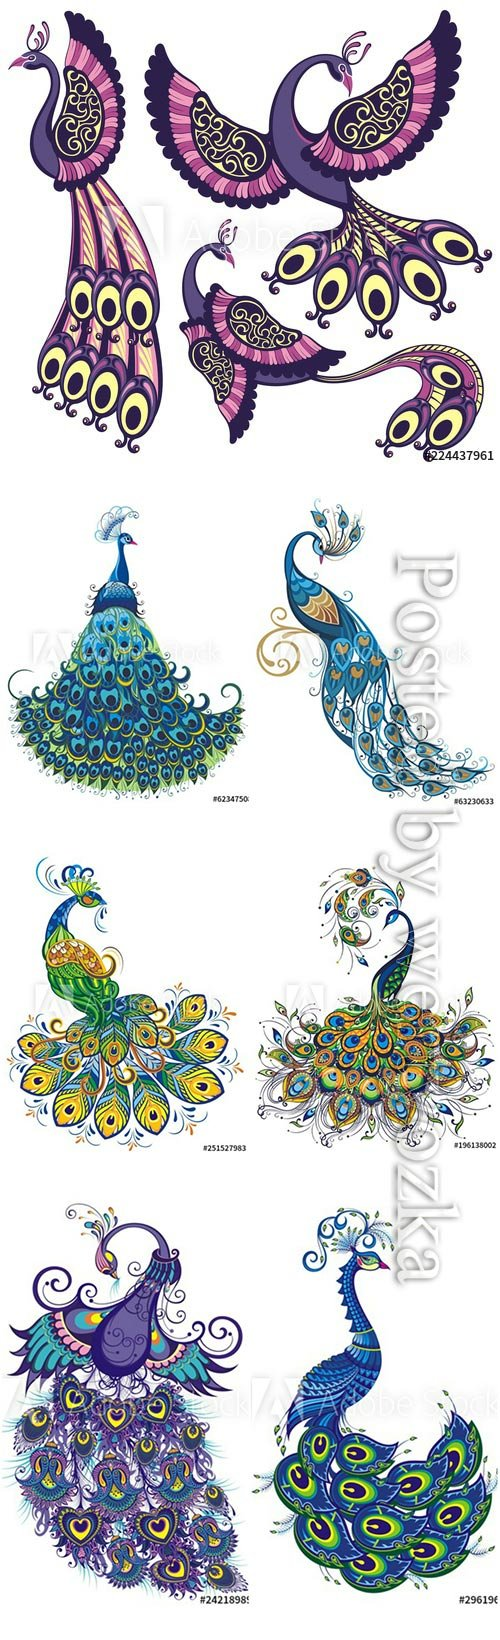 Peacock fantasy vector birds isolated on a white background